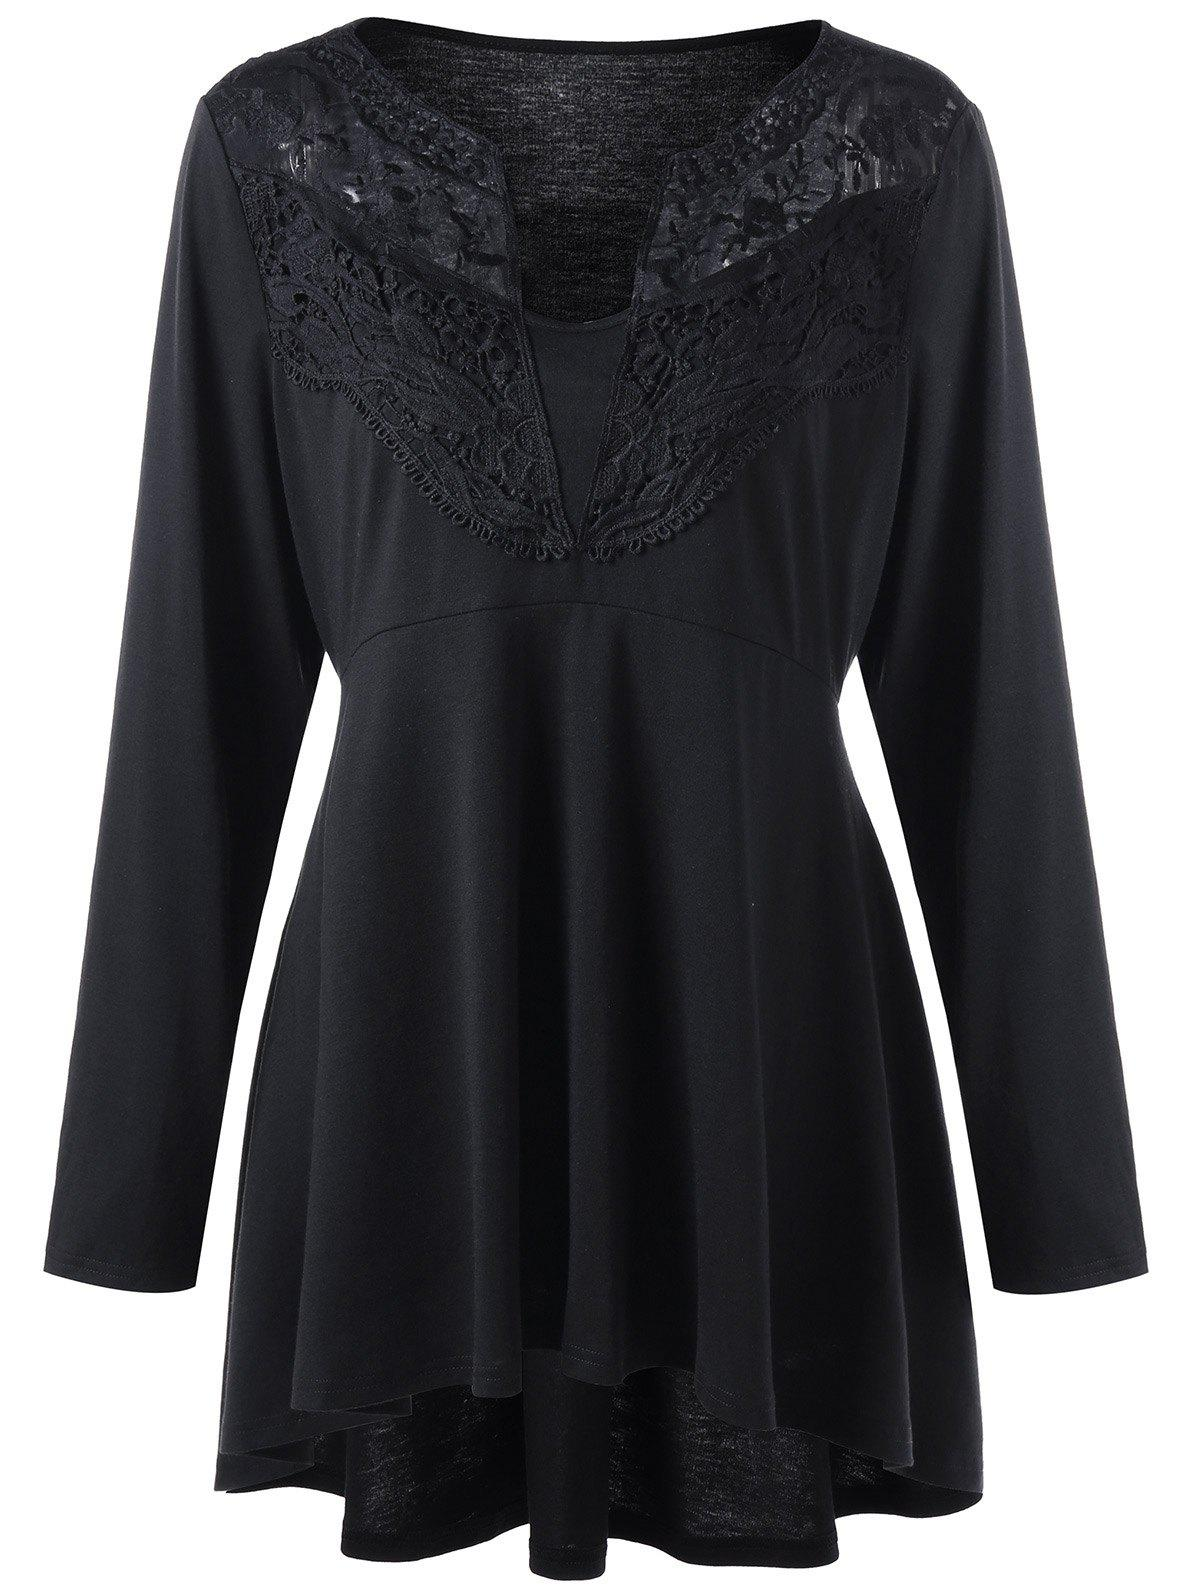 Plus Size Lace Trim High Low Hem Top - BLACK 5XL